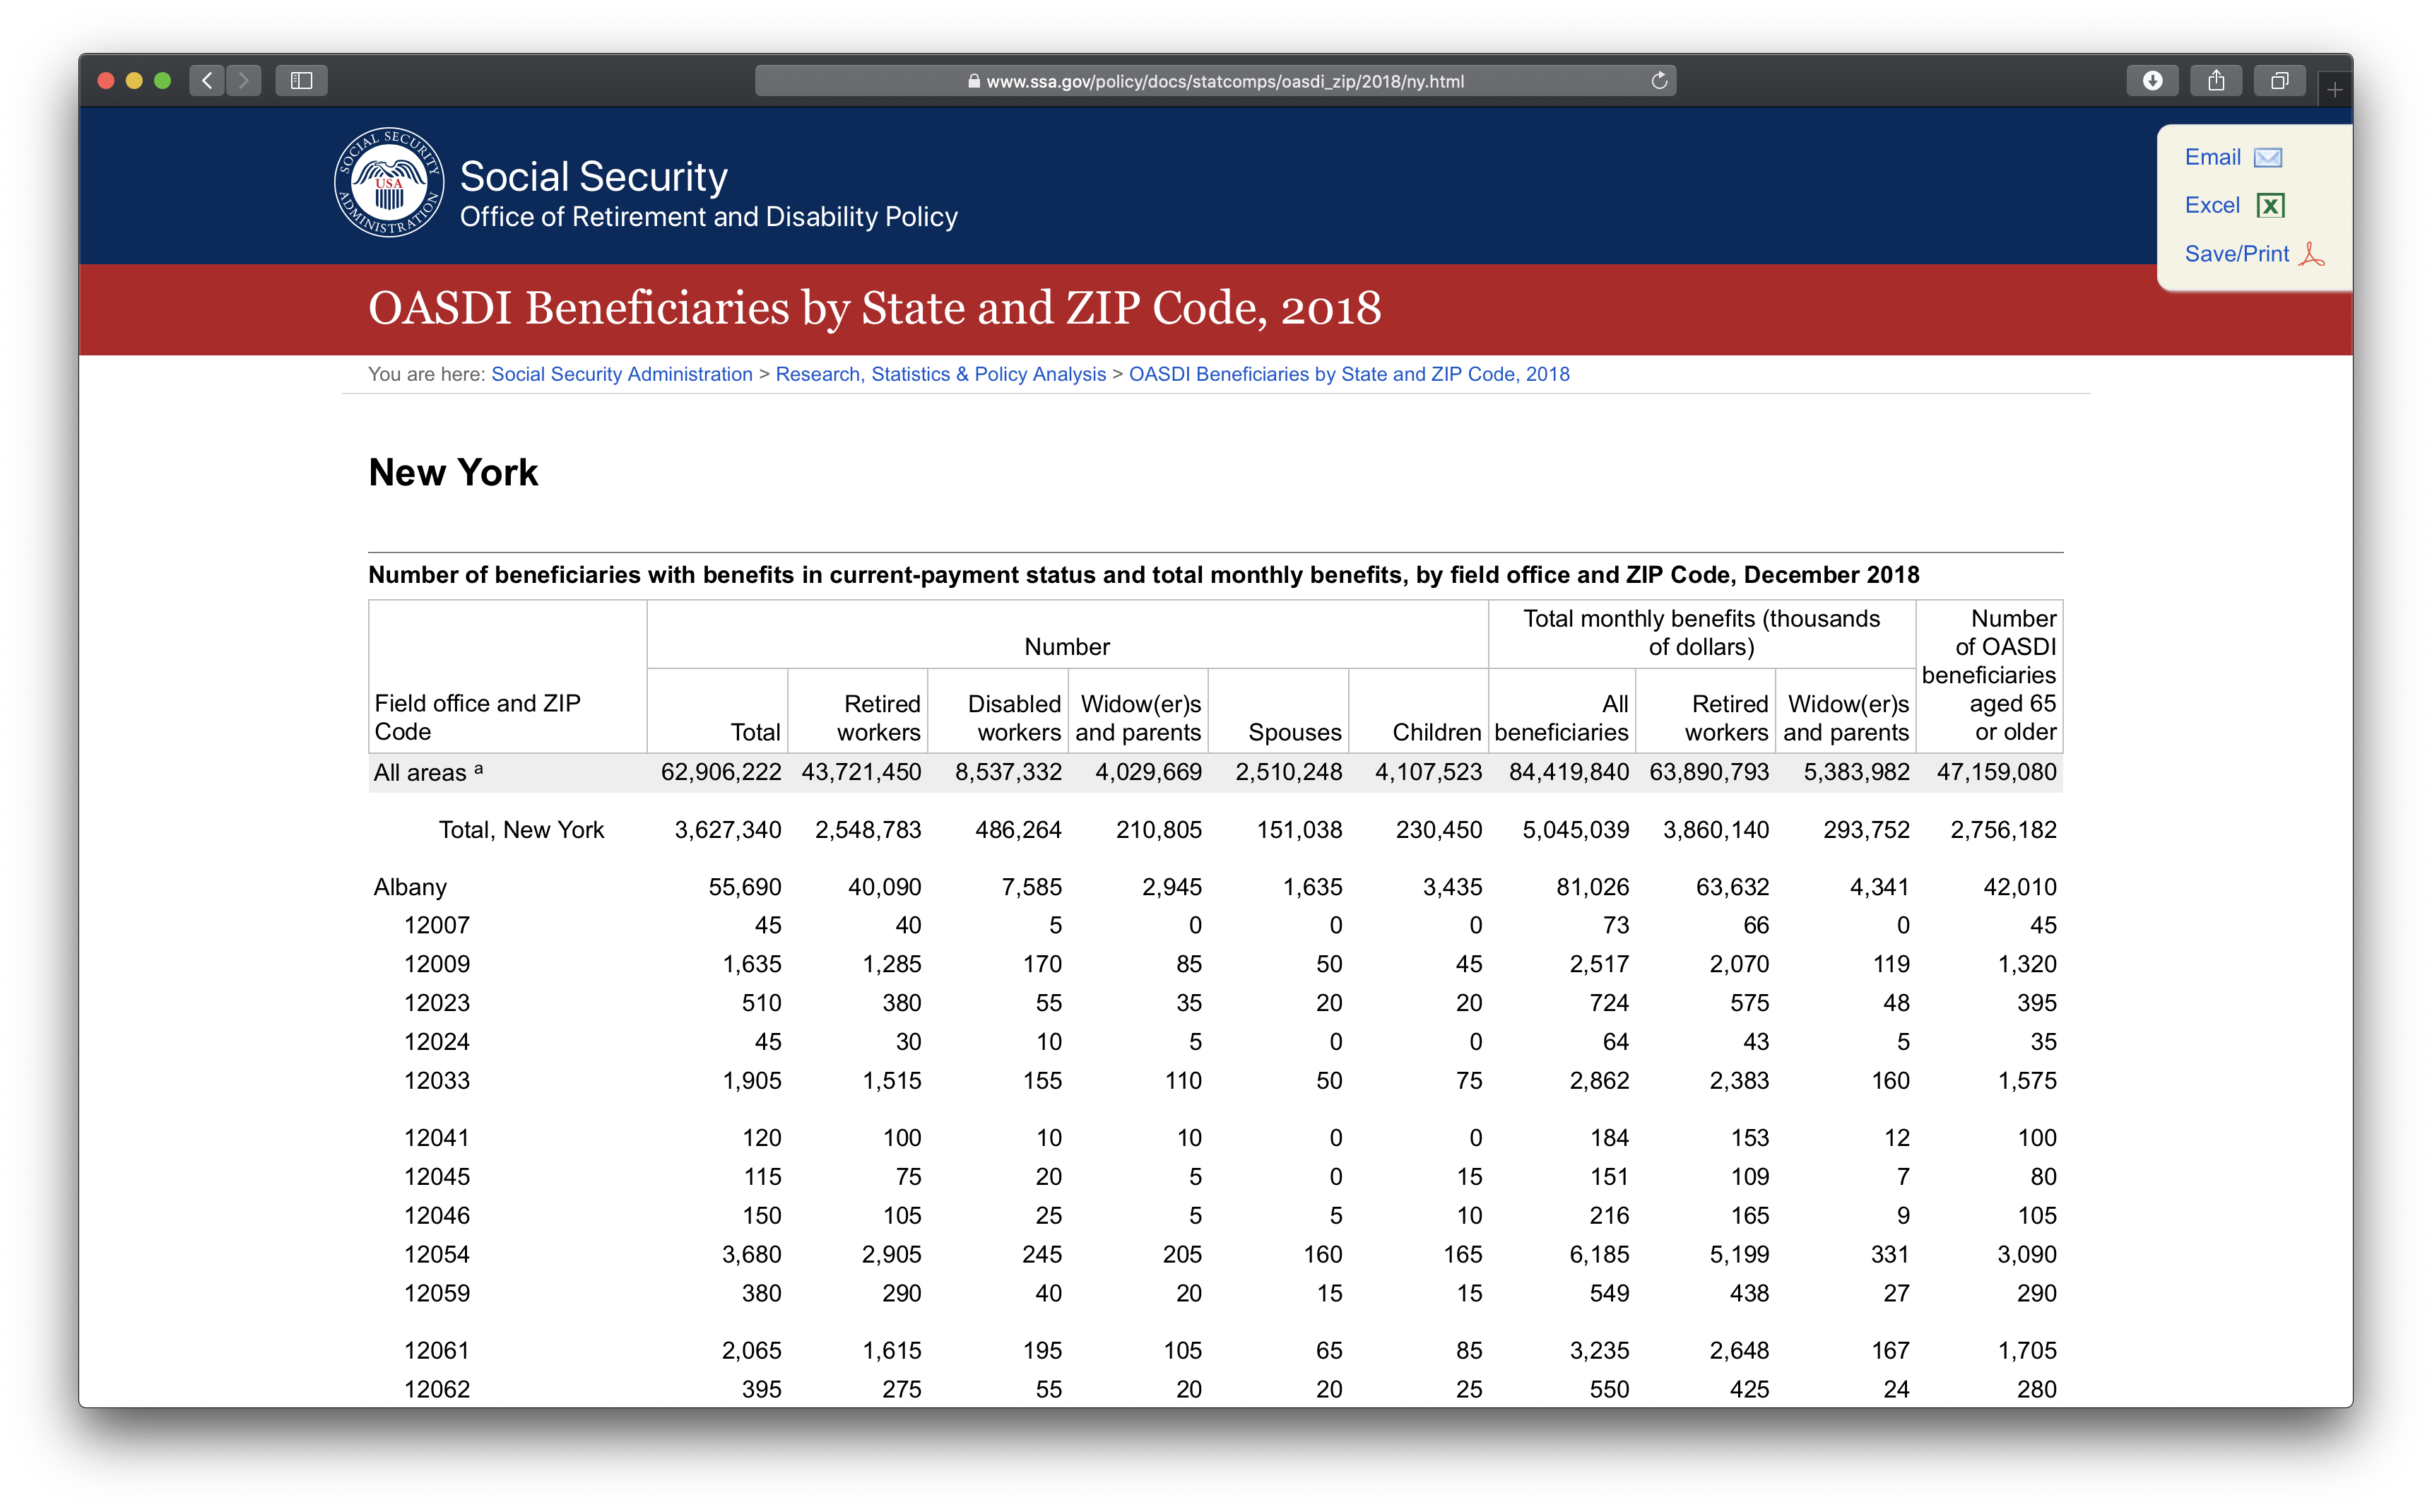 Screen Shot of Data from the Social Security Adminstration showing OASDI Beneficiaries by State and ZIP Code, 2018